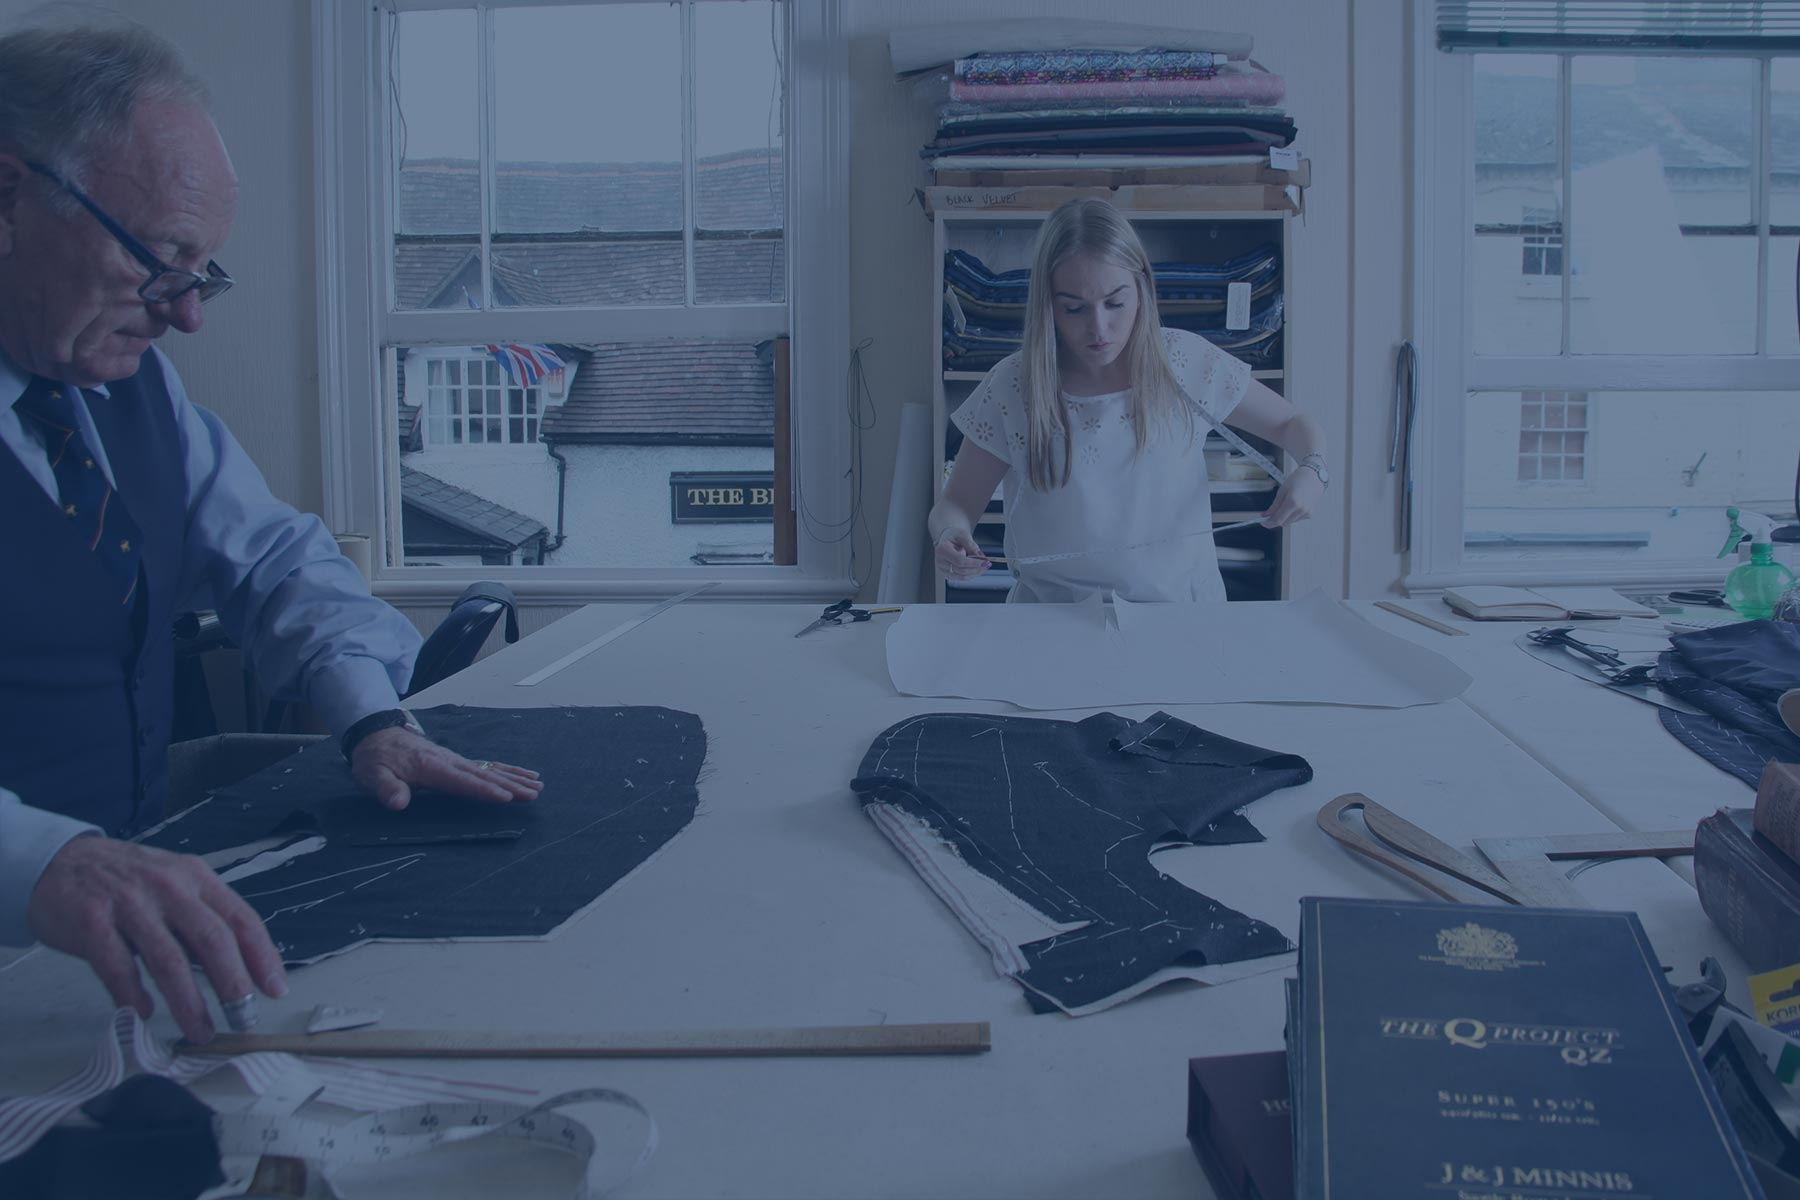 Traditional & bespoke English tailors  - —